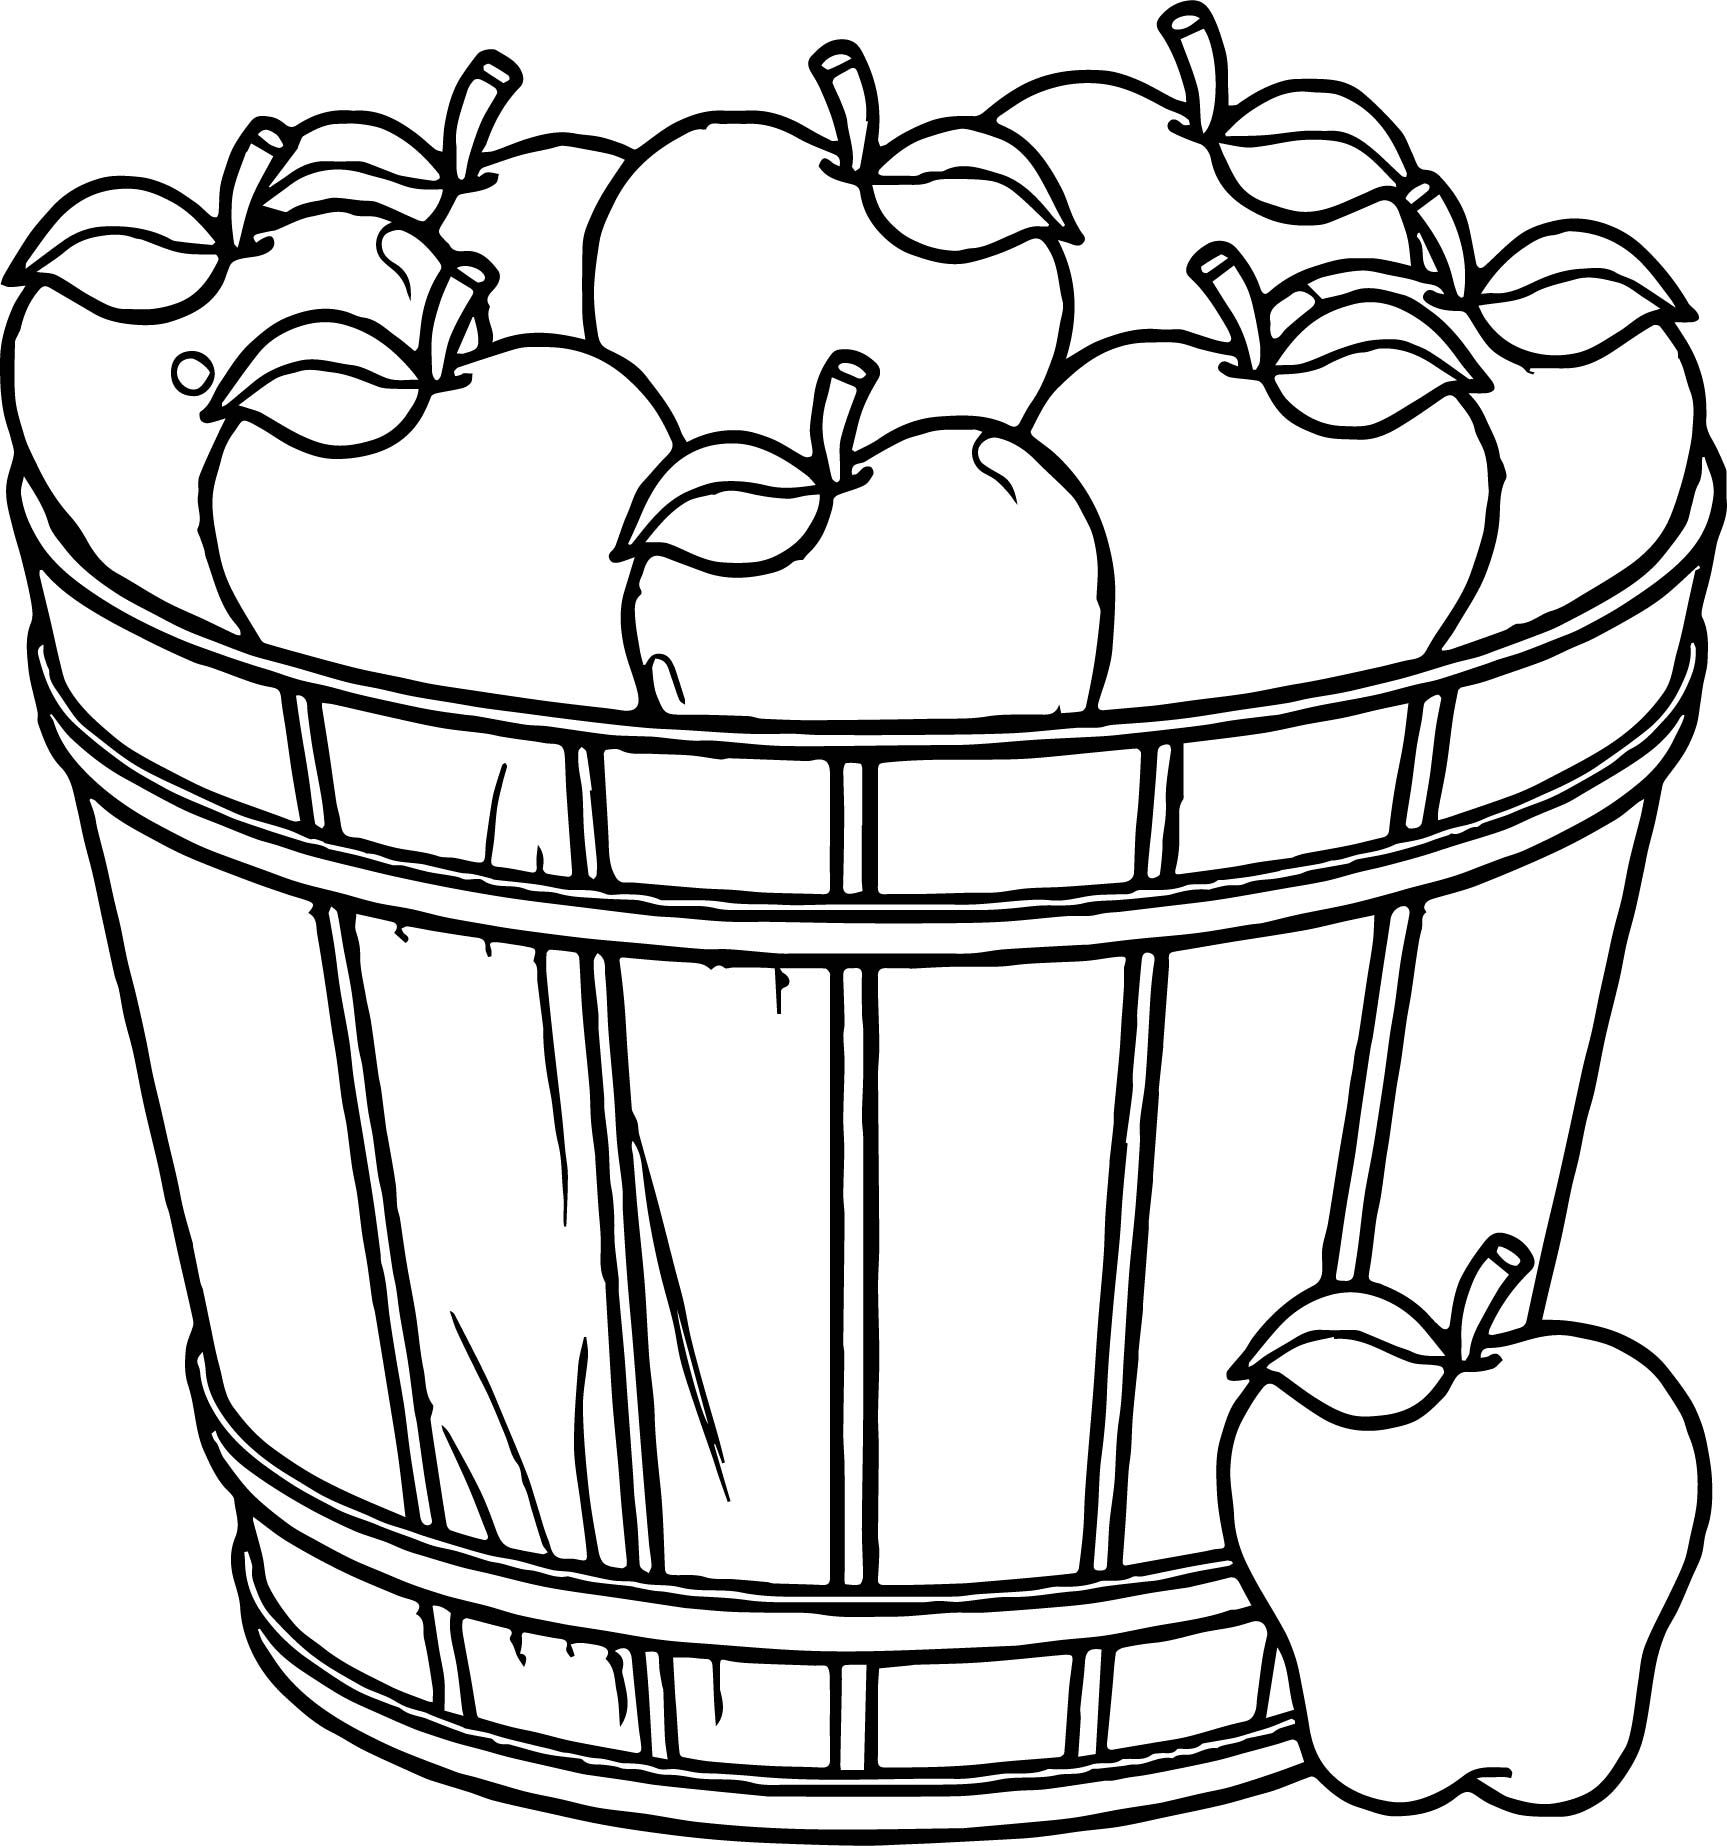 Basketpples Coloring Pages 2020 Check More At Https Bo Peep